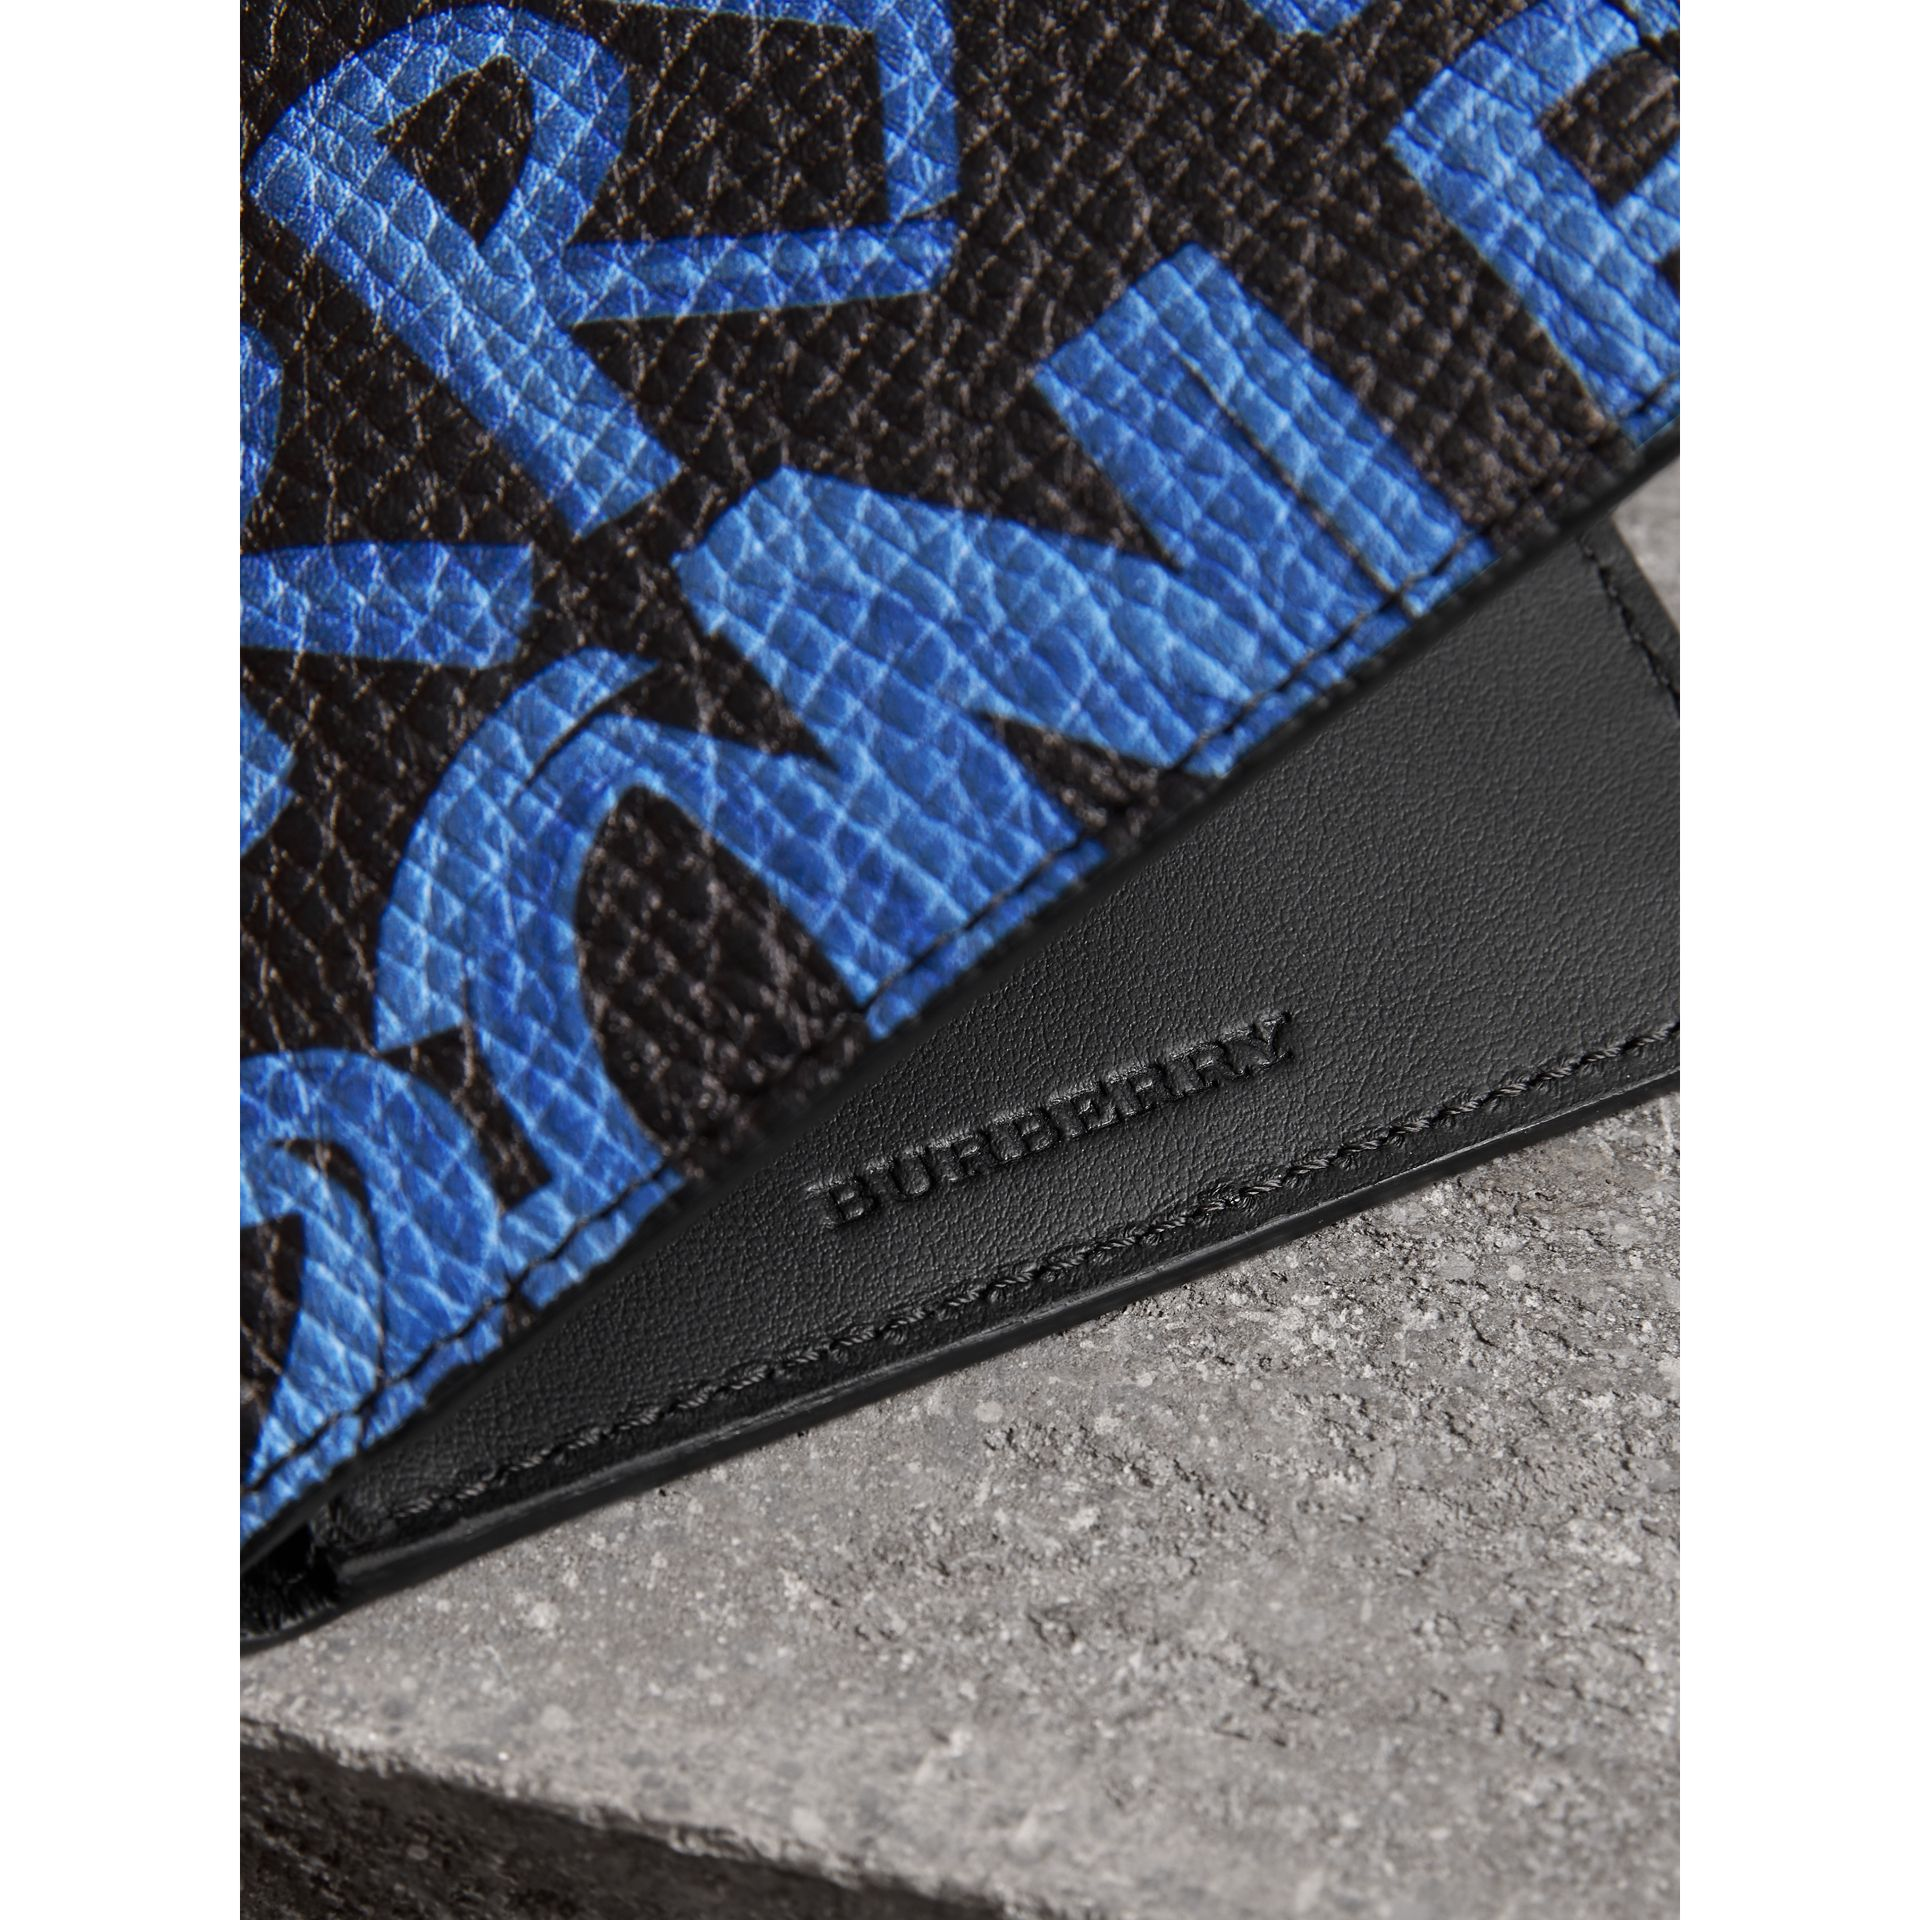 Graffiti Print Leather International Bifold Wallet in Blue/black - Men | Burberry Australia - gallery image 1